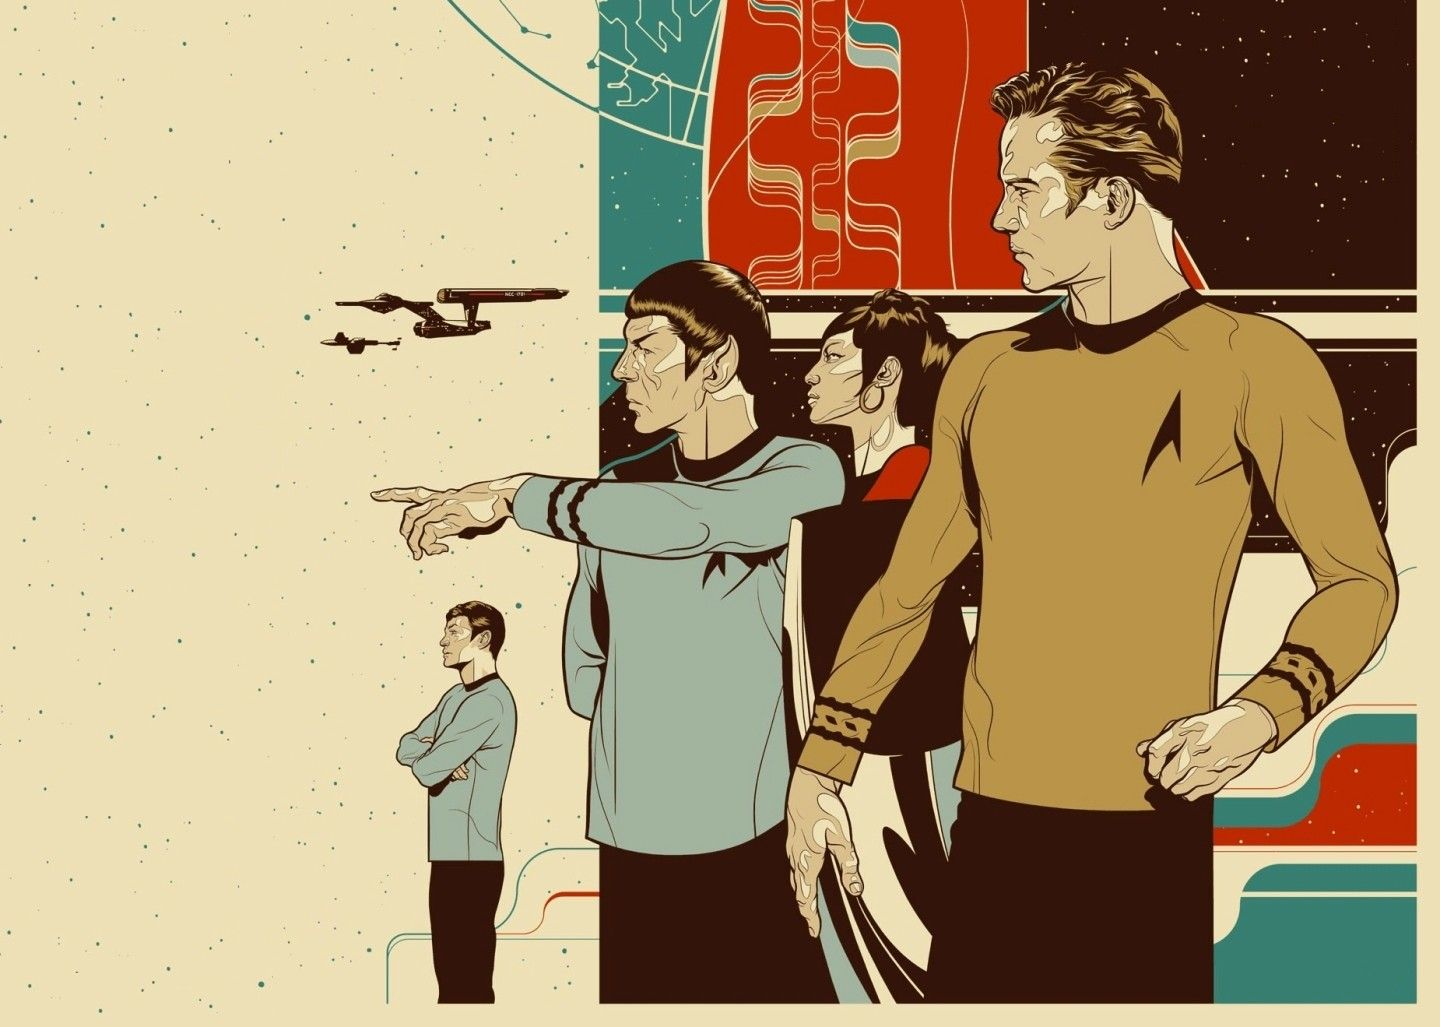 Great Wallpaper Home Screen Star Trek - cc0824888d22097990fe751bb7369eff  Gallery_365417.jpg